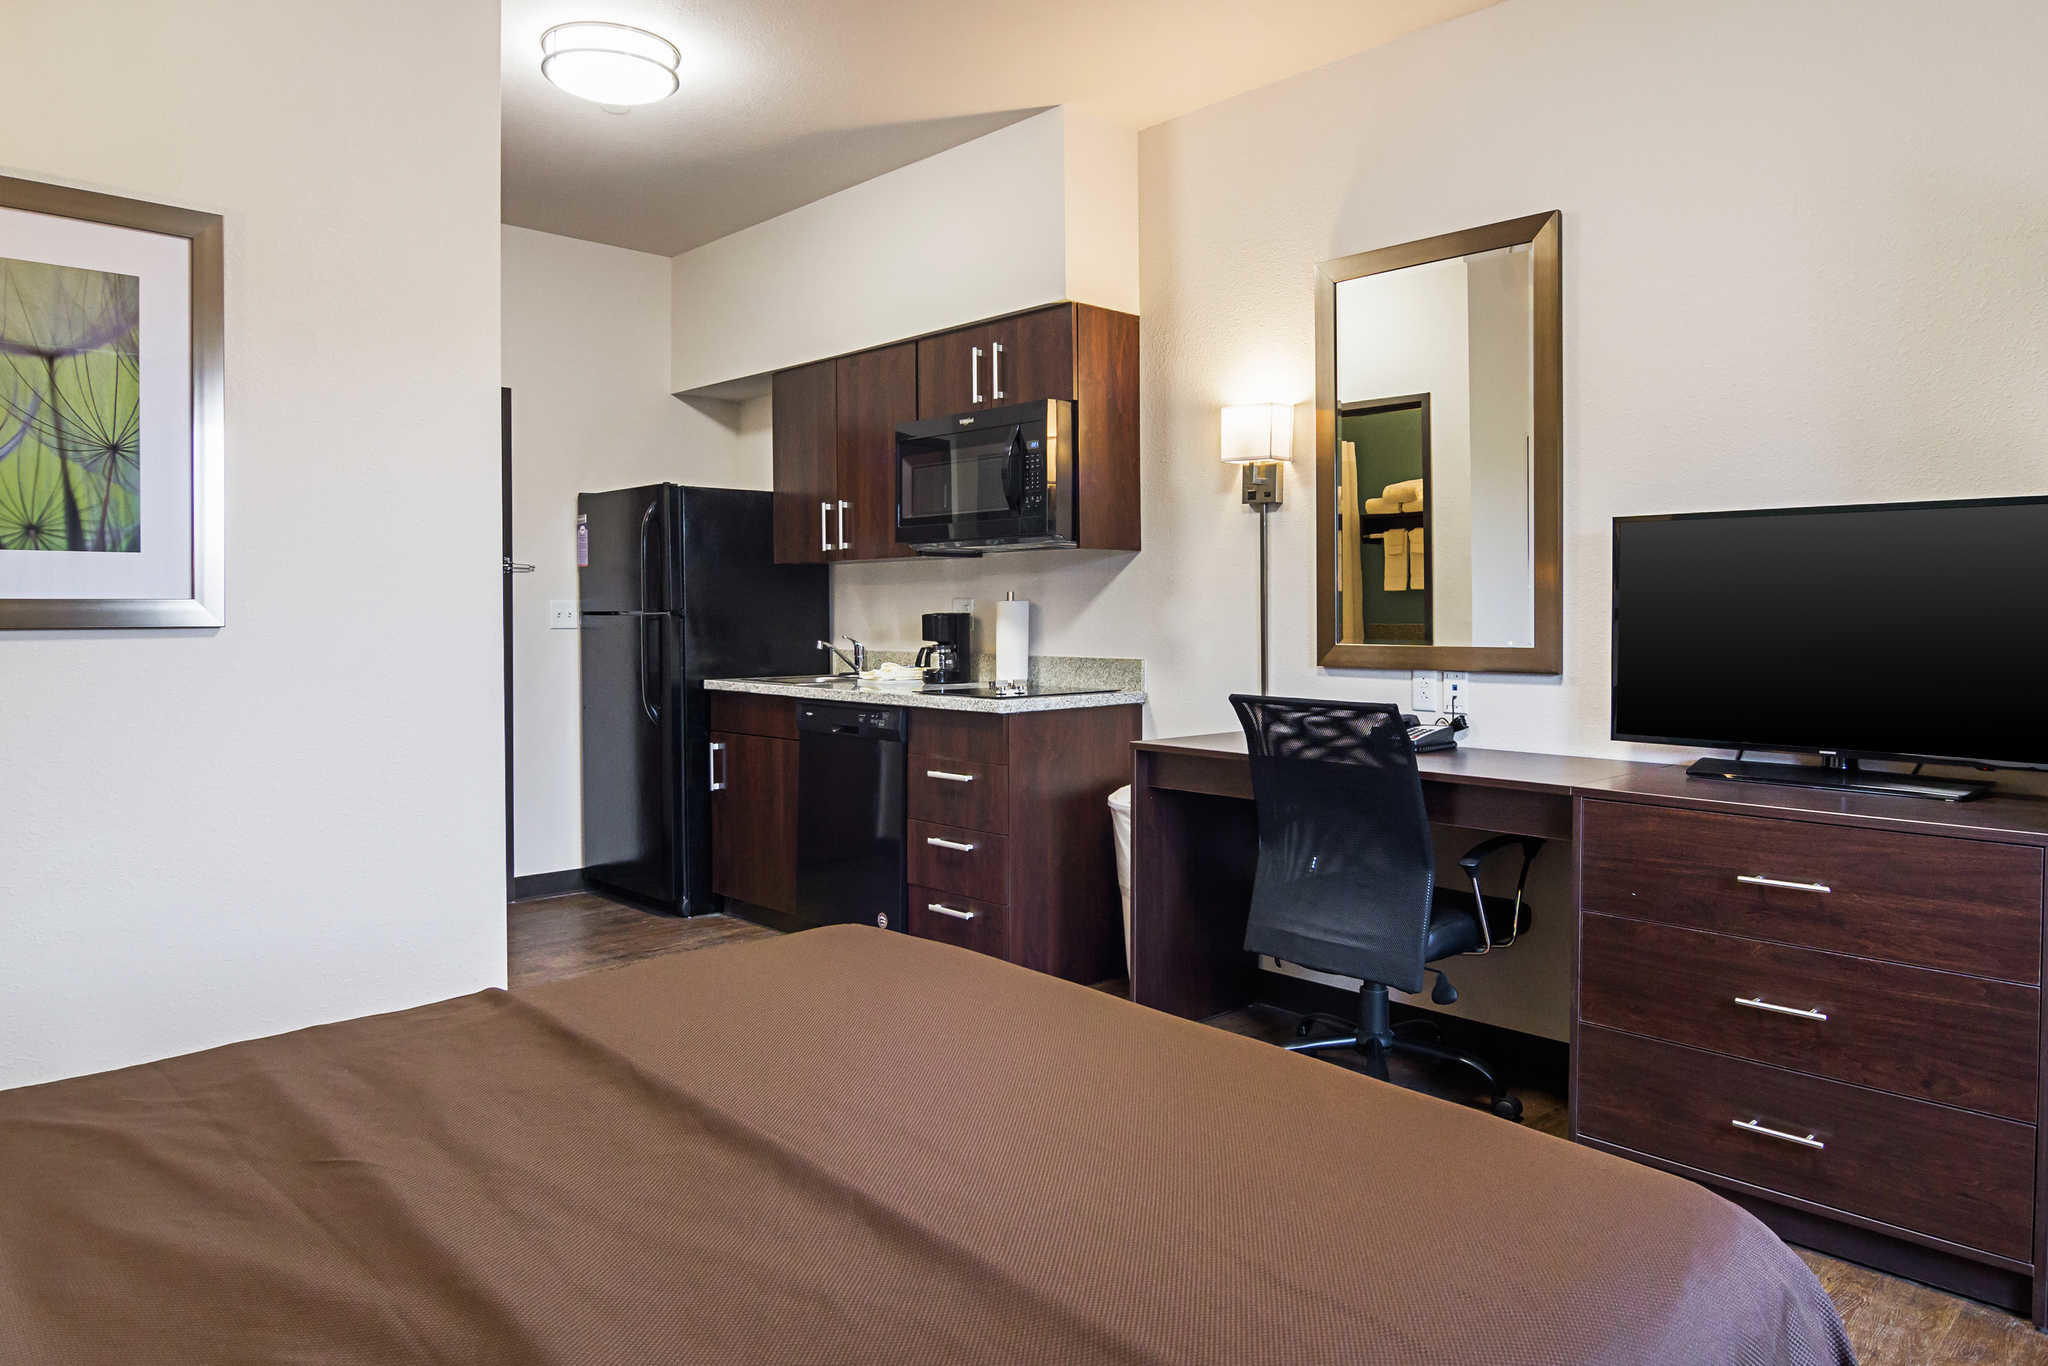 Suburban Extended Stay Hotel image 14